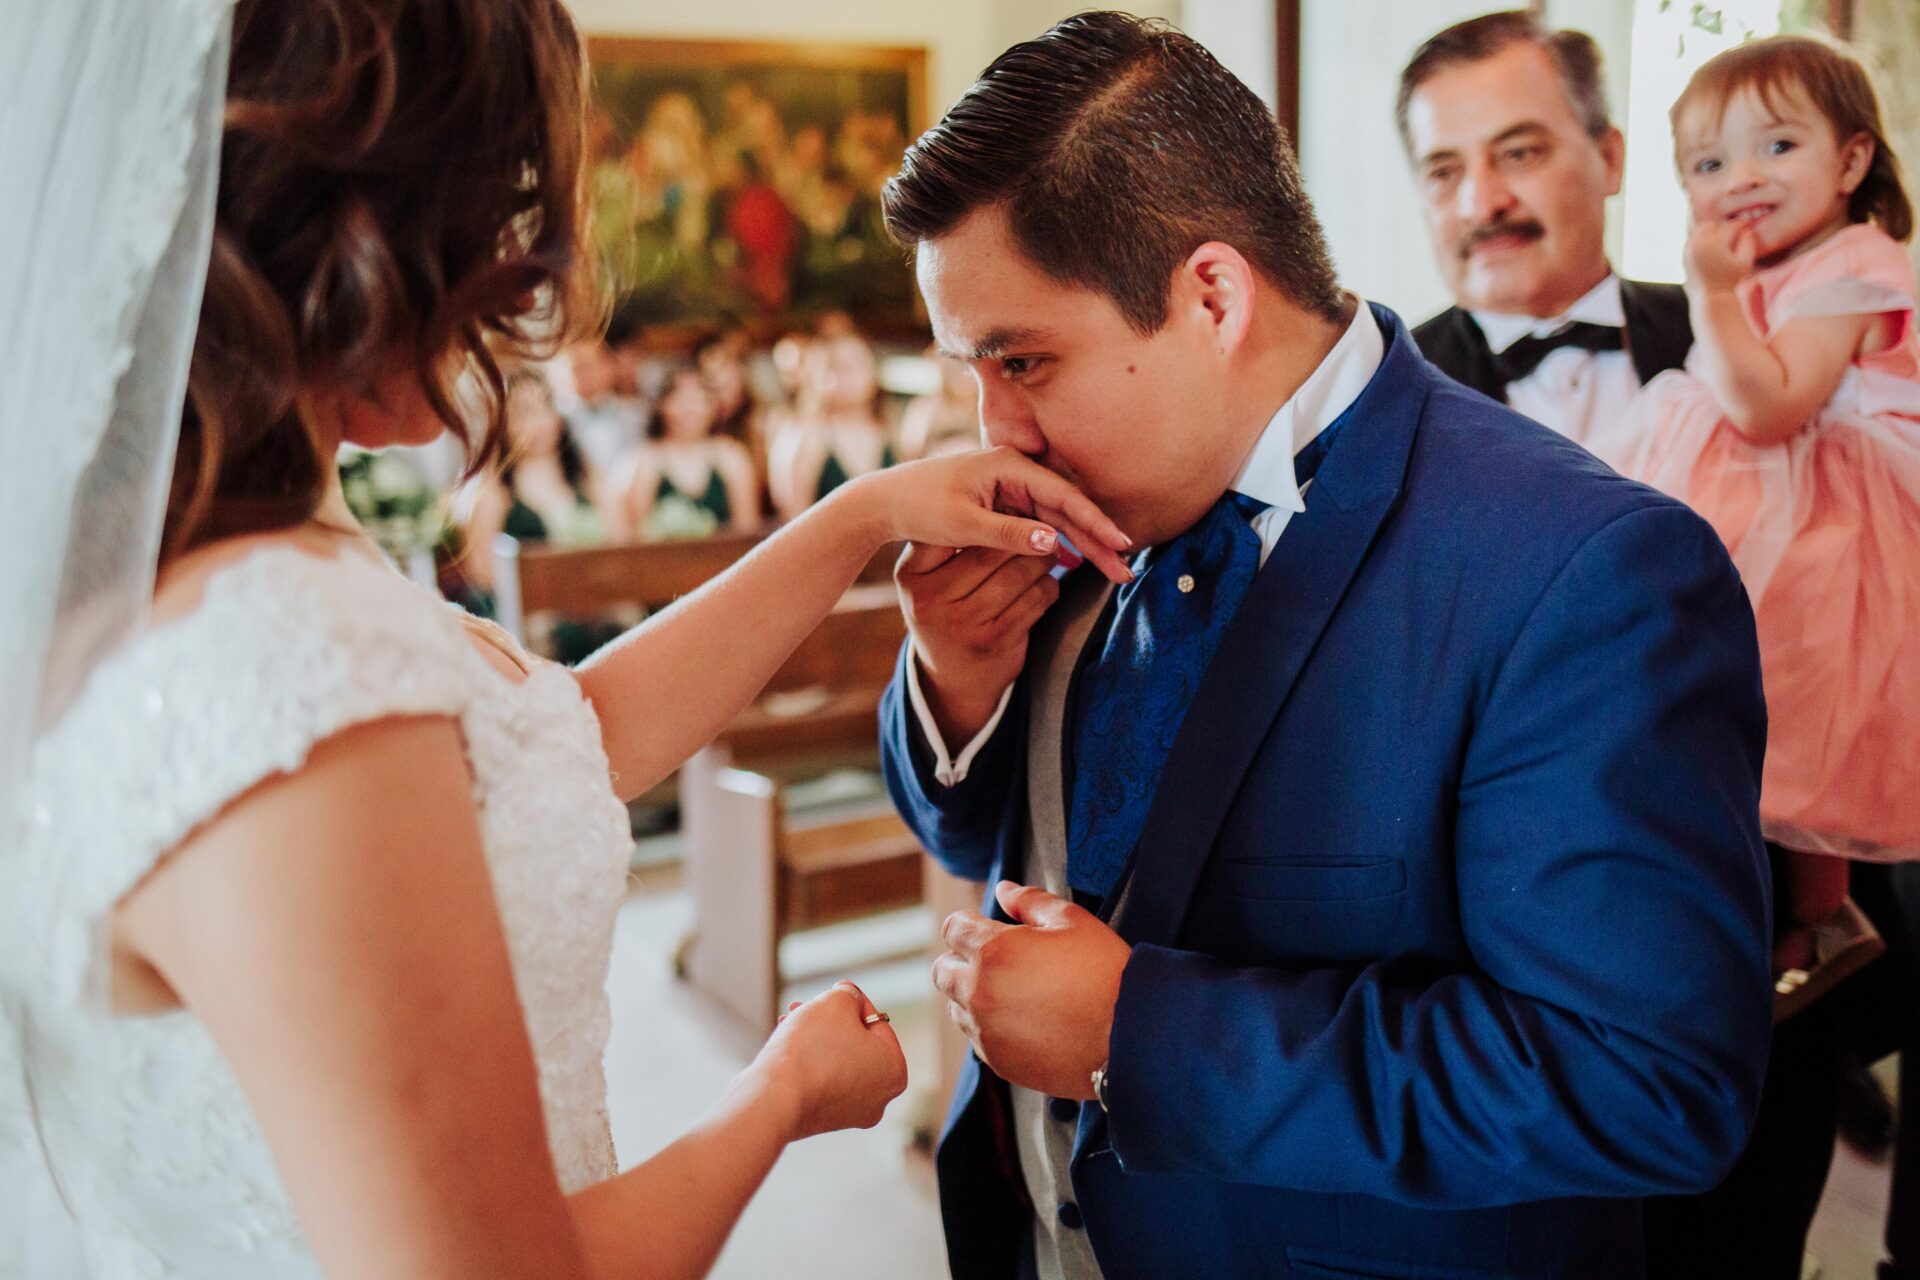 javier_noriega_fotografo_bodas_torreon_coahuila_zacatecas_wedding_photographer32a